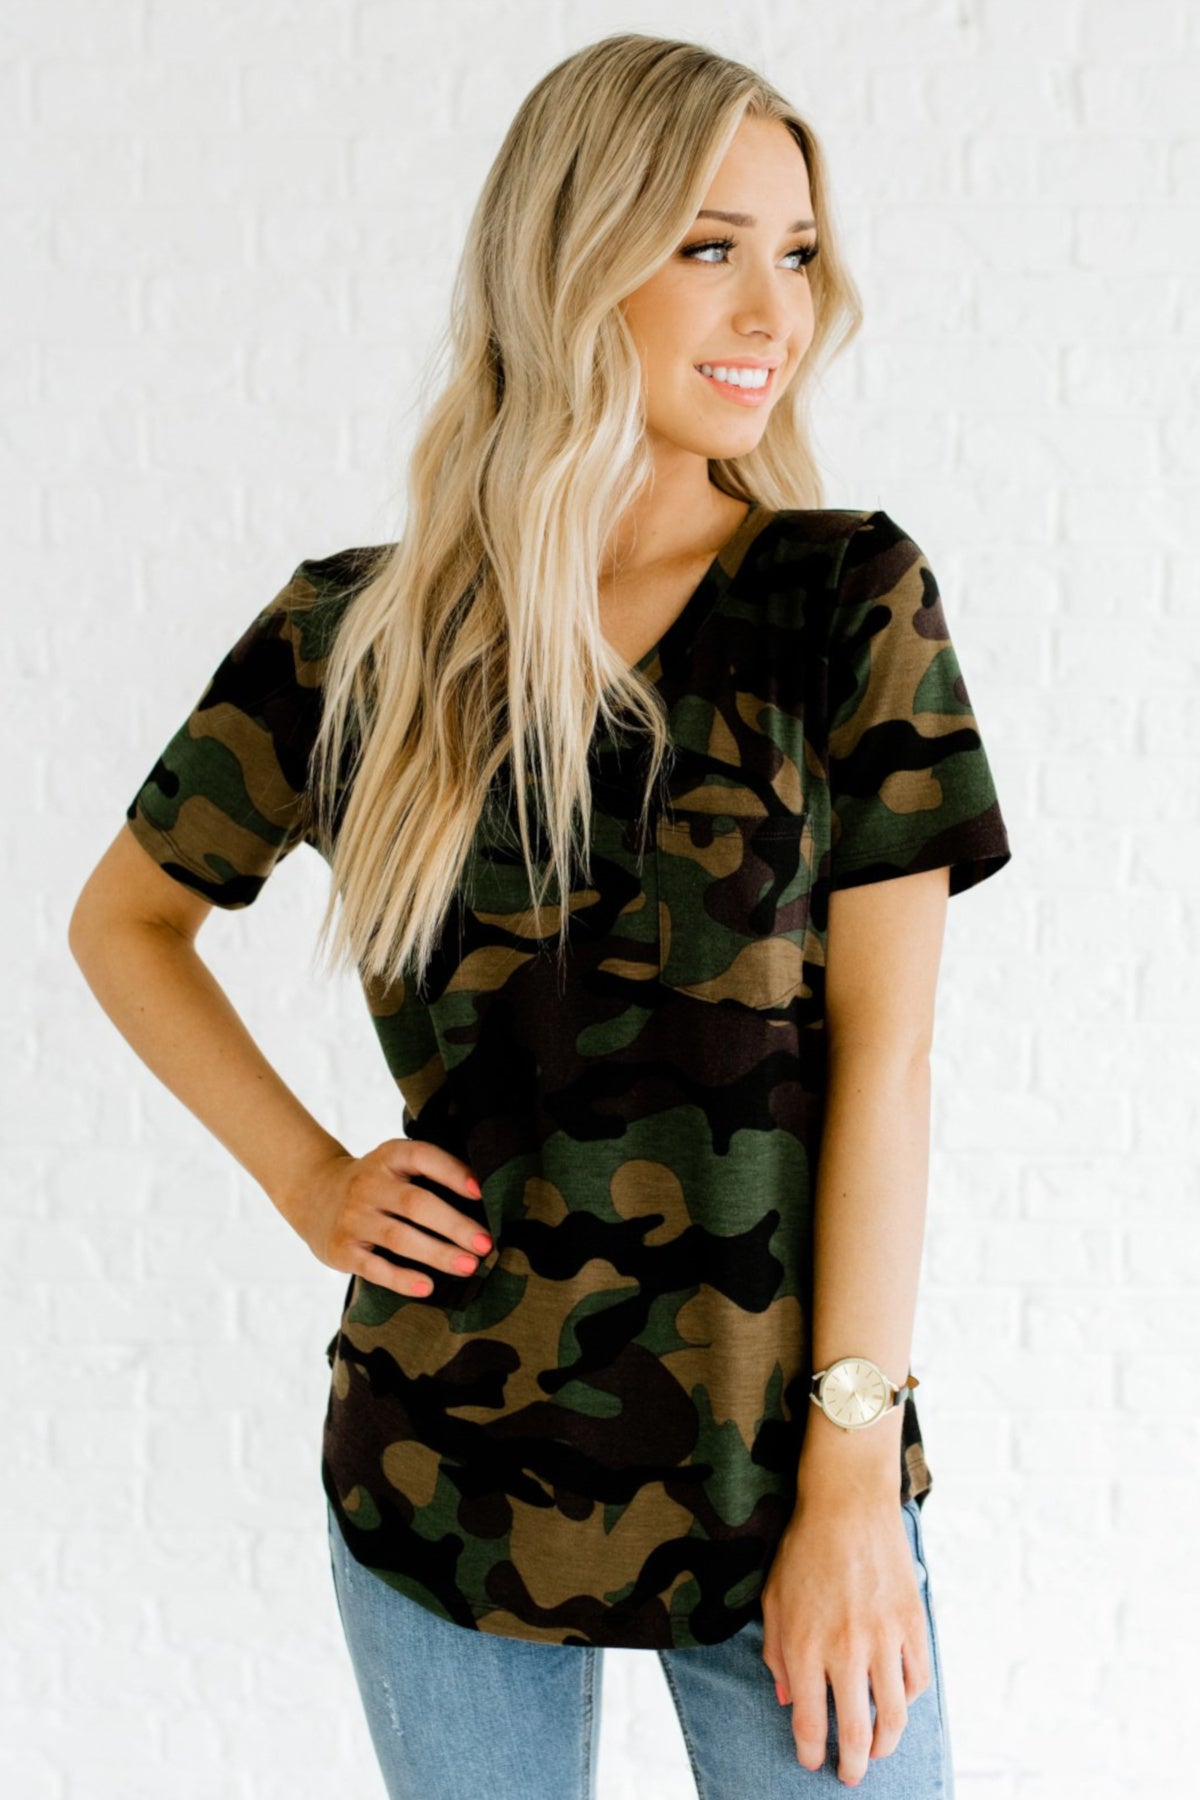 Green Brown Black Camo Print Soft Stretchy Pocket Tees for Women